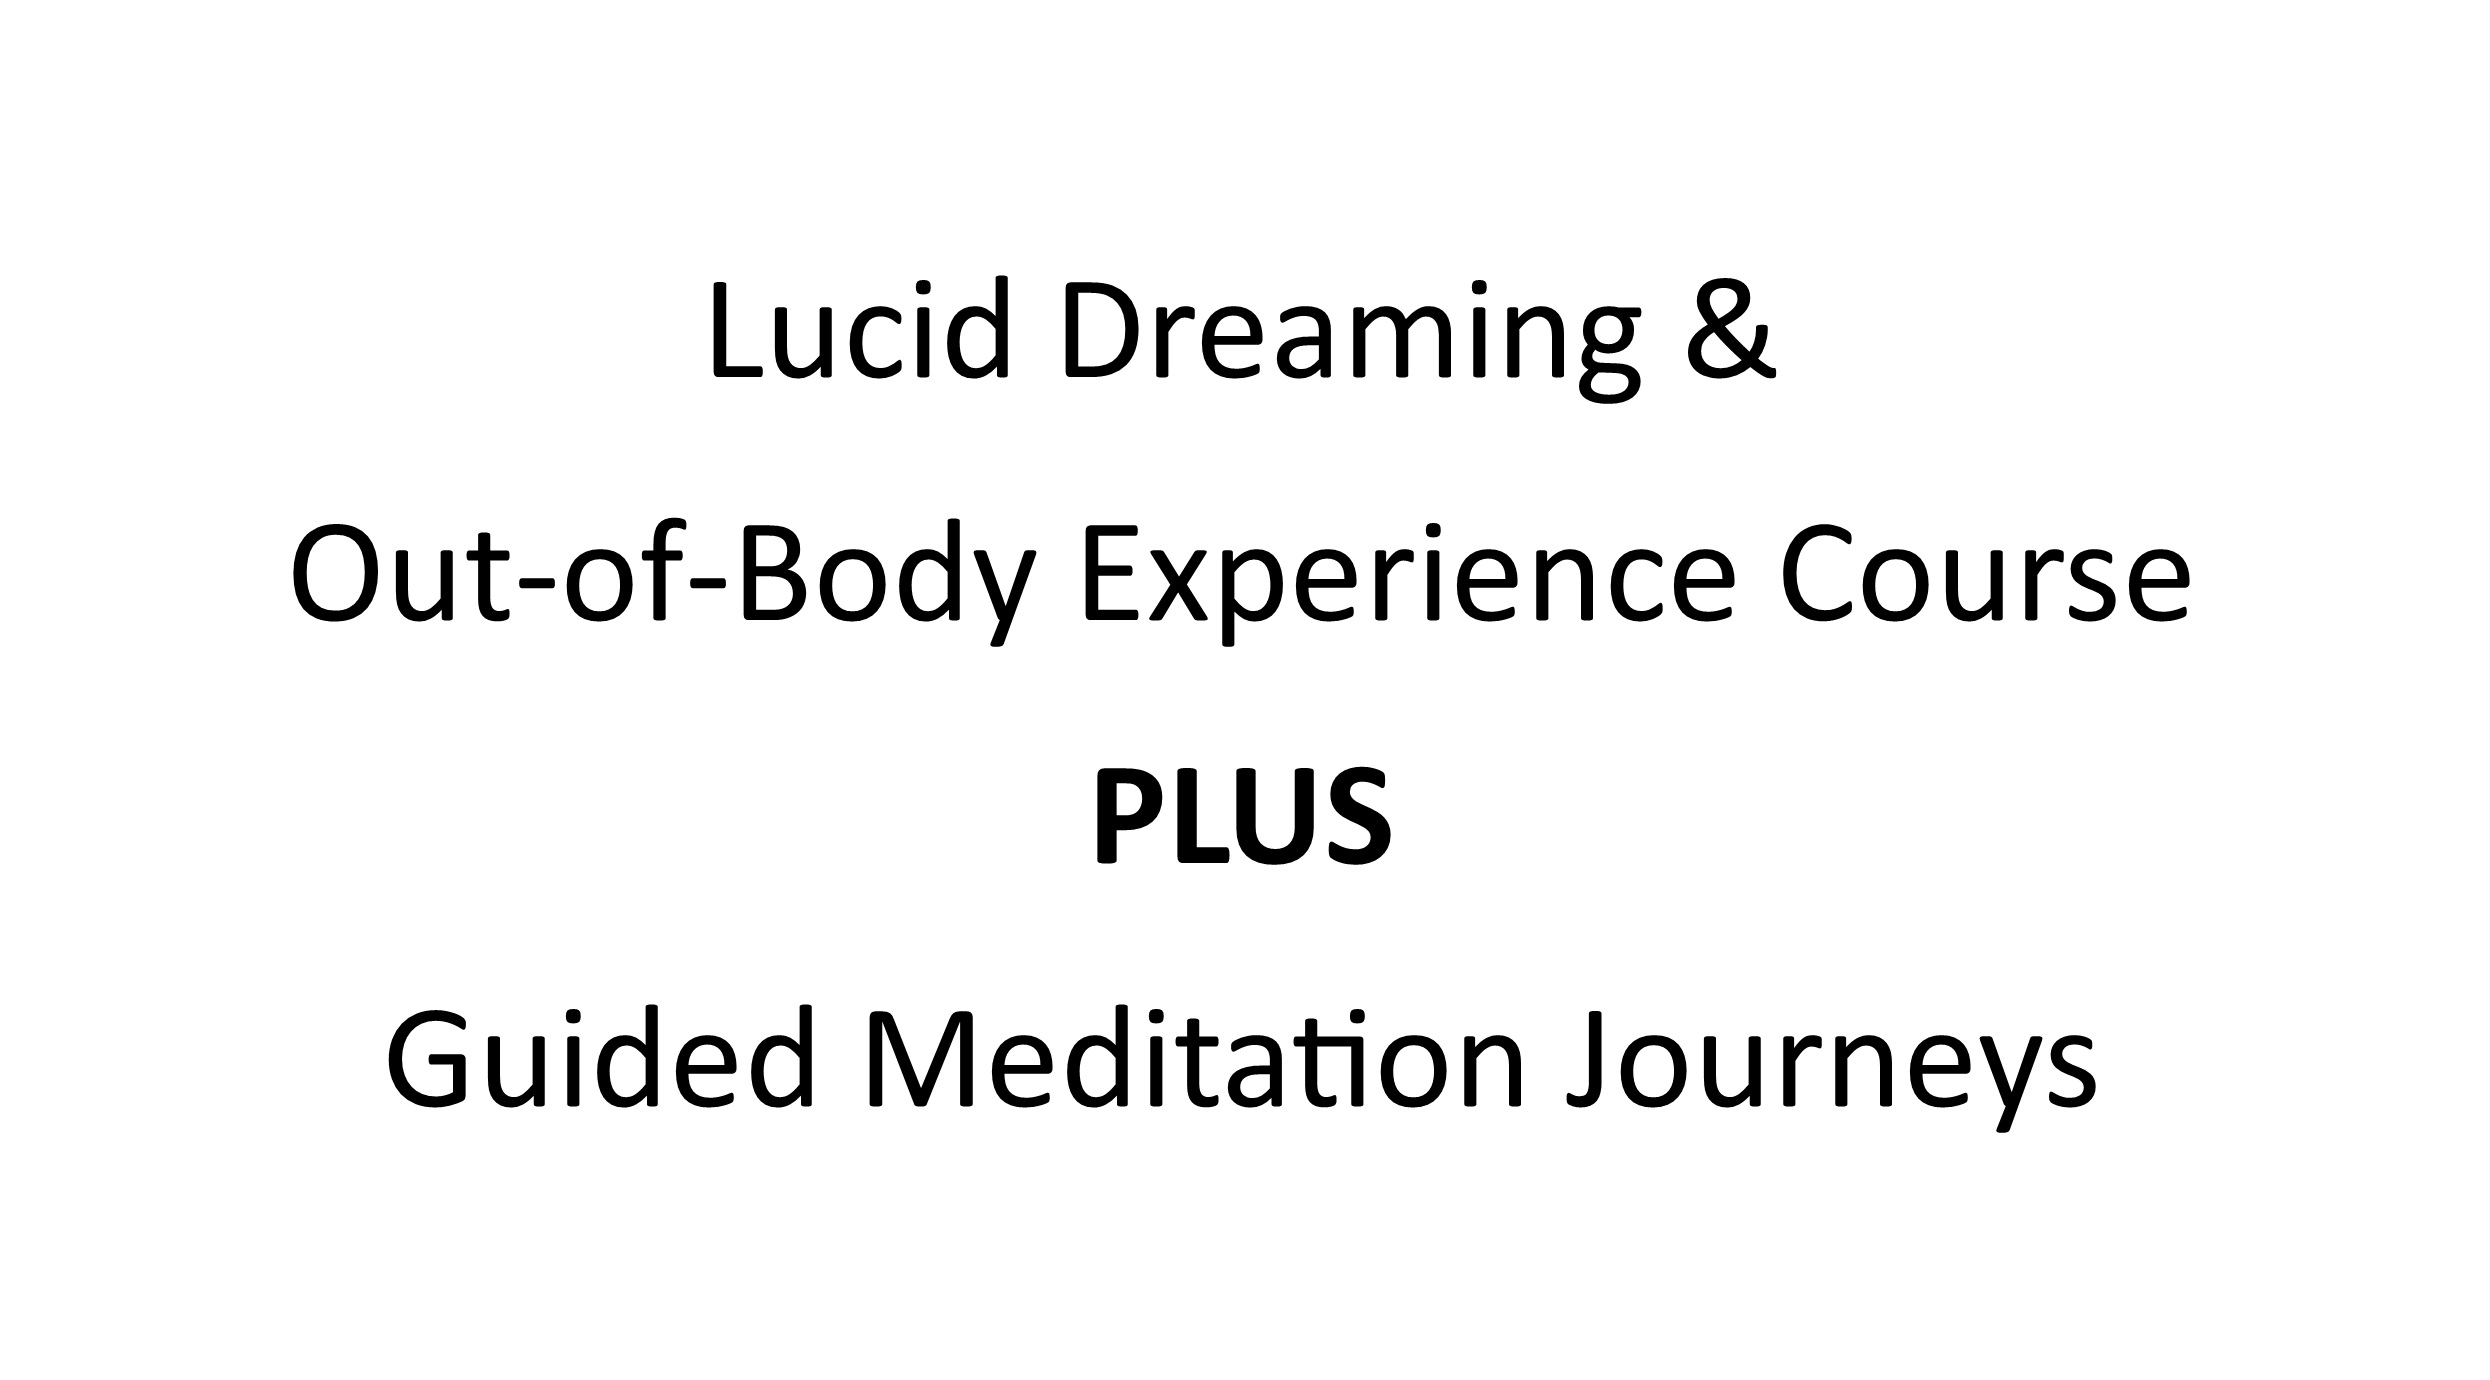 Lucid Dreaming & Out-of-Body Experience Training PLUS Guided